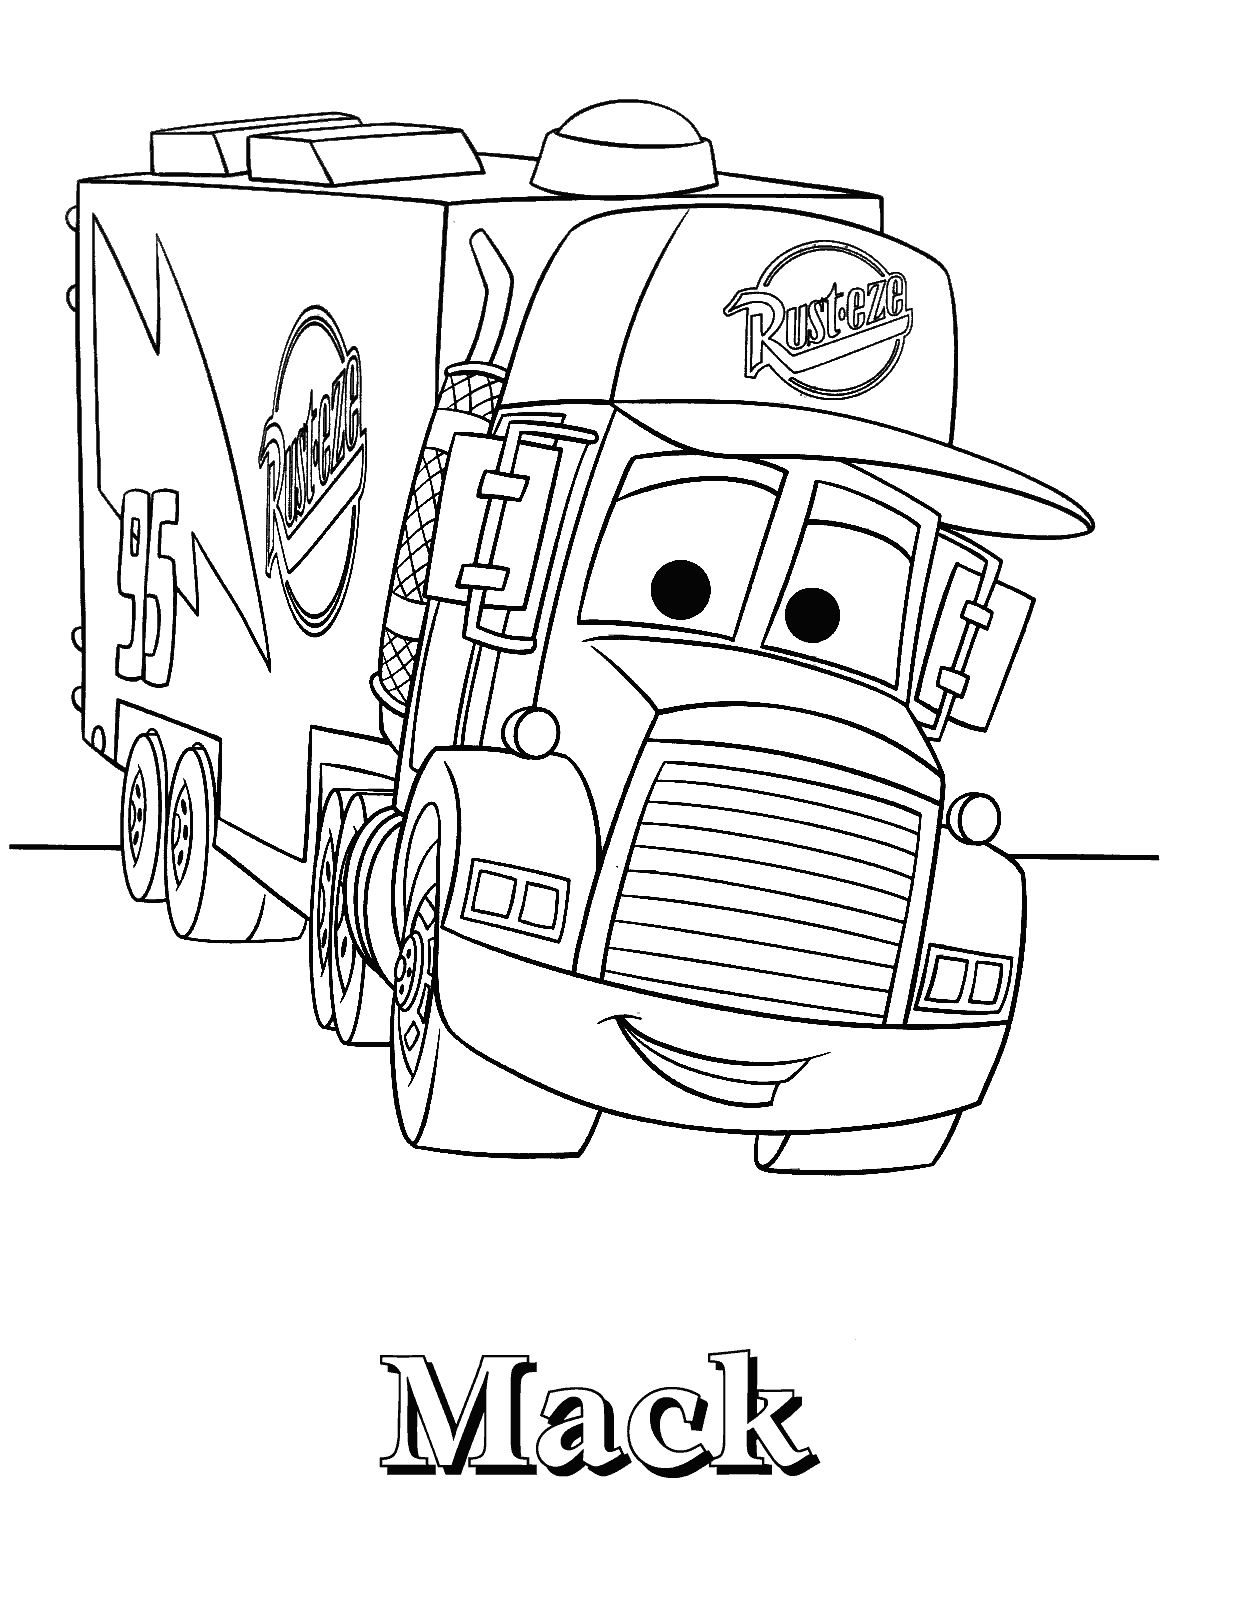 Fresh Printable Lightning Mcqueen Coloring Pages Free Large Images Monster Truck Coloring Pages Truck Coloring Pages Coloring Books